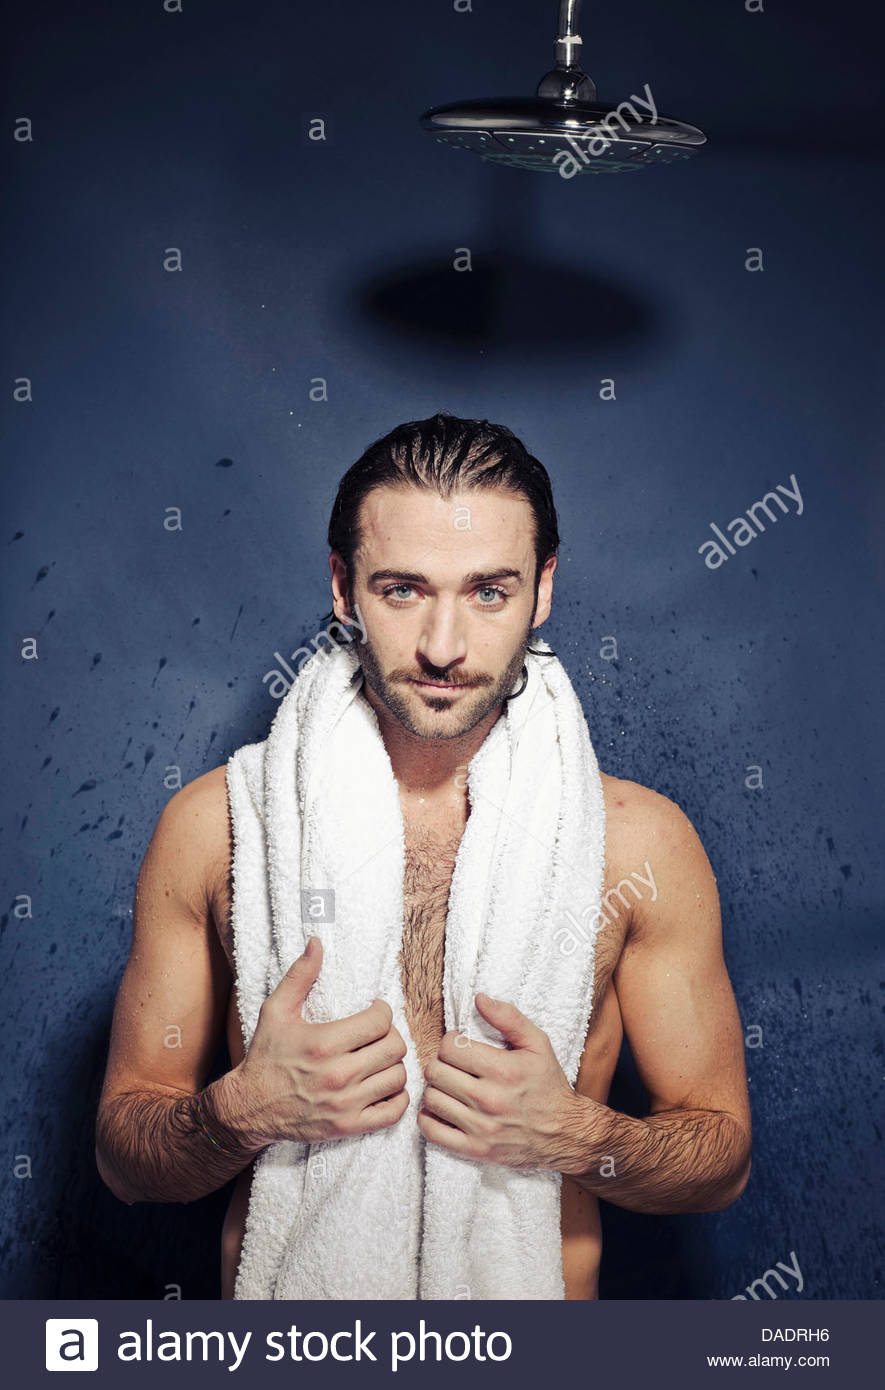 Young man after shower with towel around shoulders - Stock Image